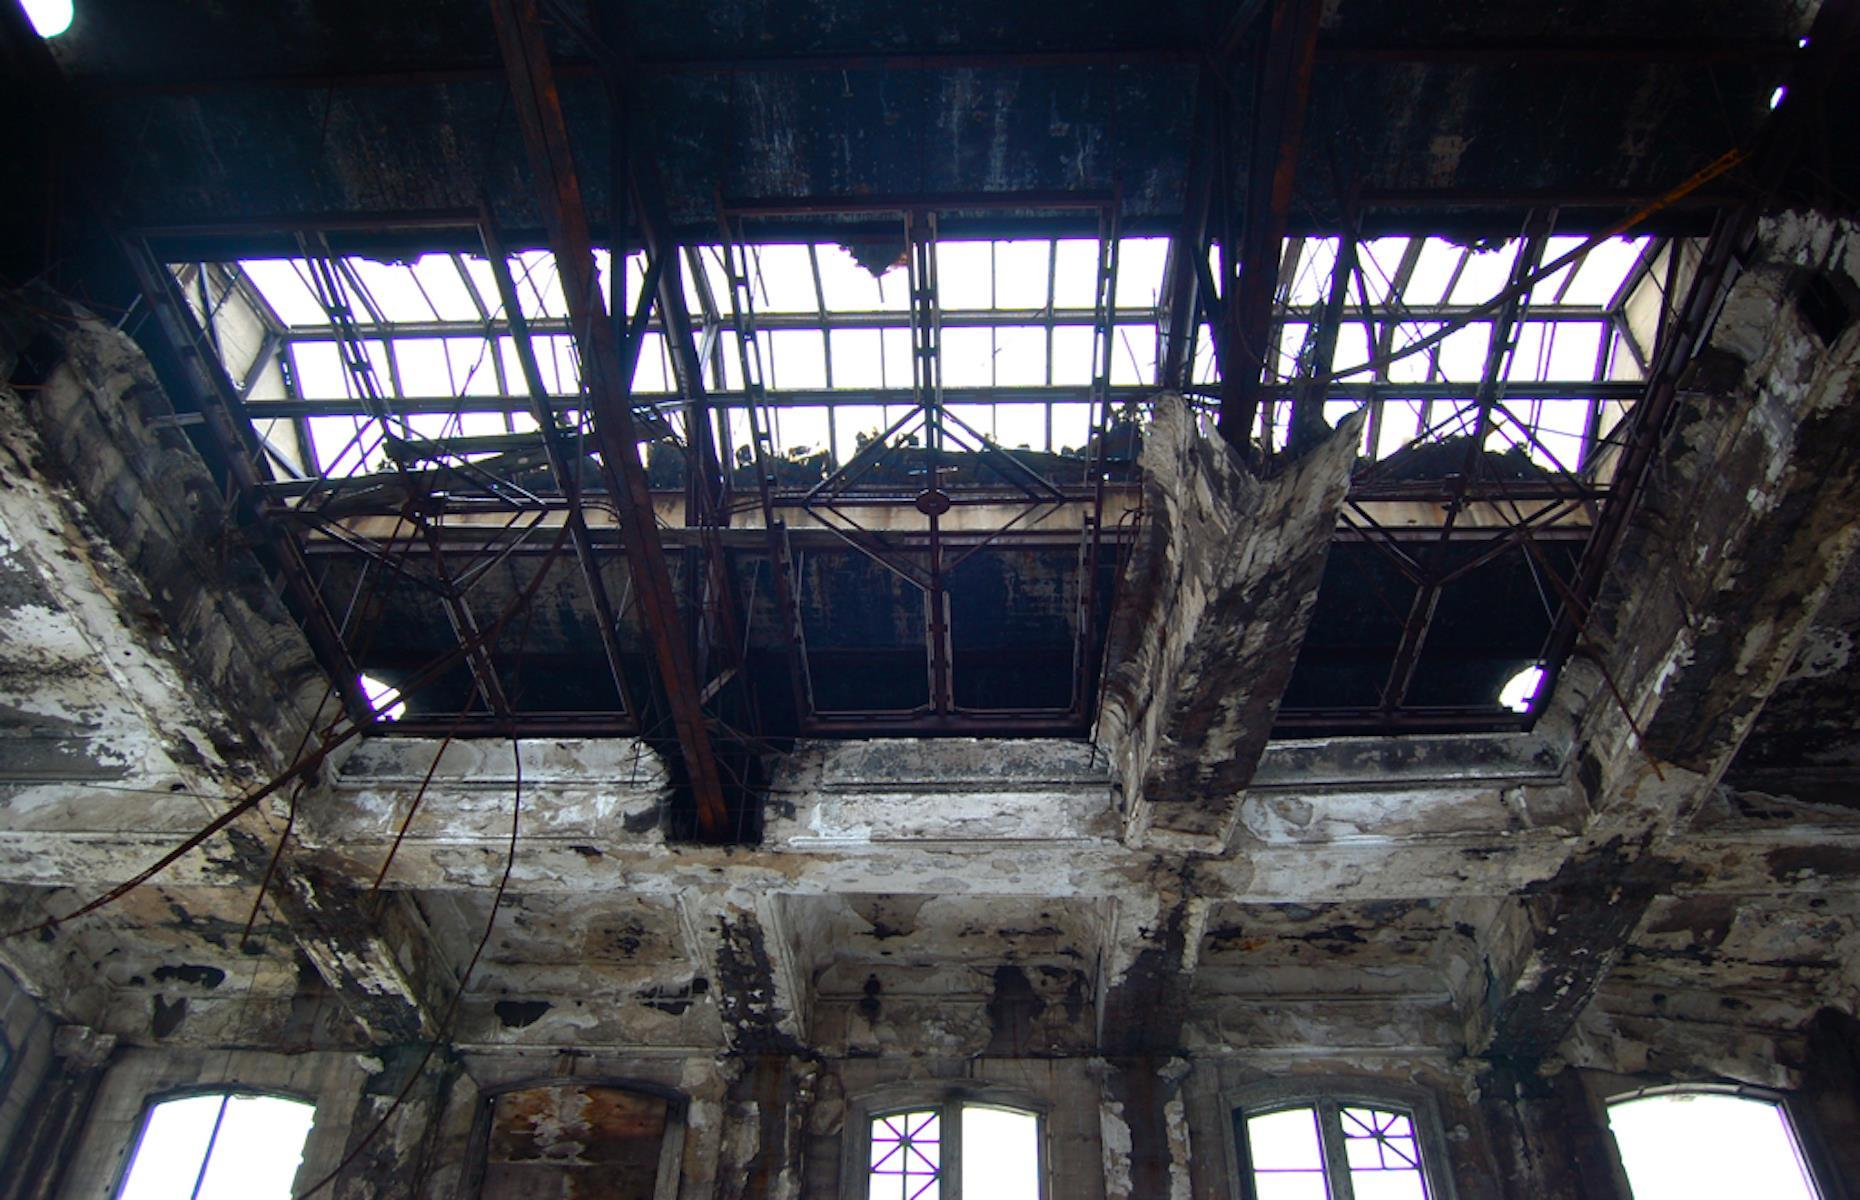 Slide 8 of 33: The exterior of the station remains amazingly intact, but the interior, including its once grand and cavernous hall, has been gutted and vandalized. Gary has several other notable ruins, including the City Methodist Church, each telling of the town's slump from a thriving center of industry.